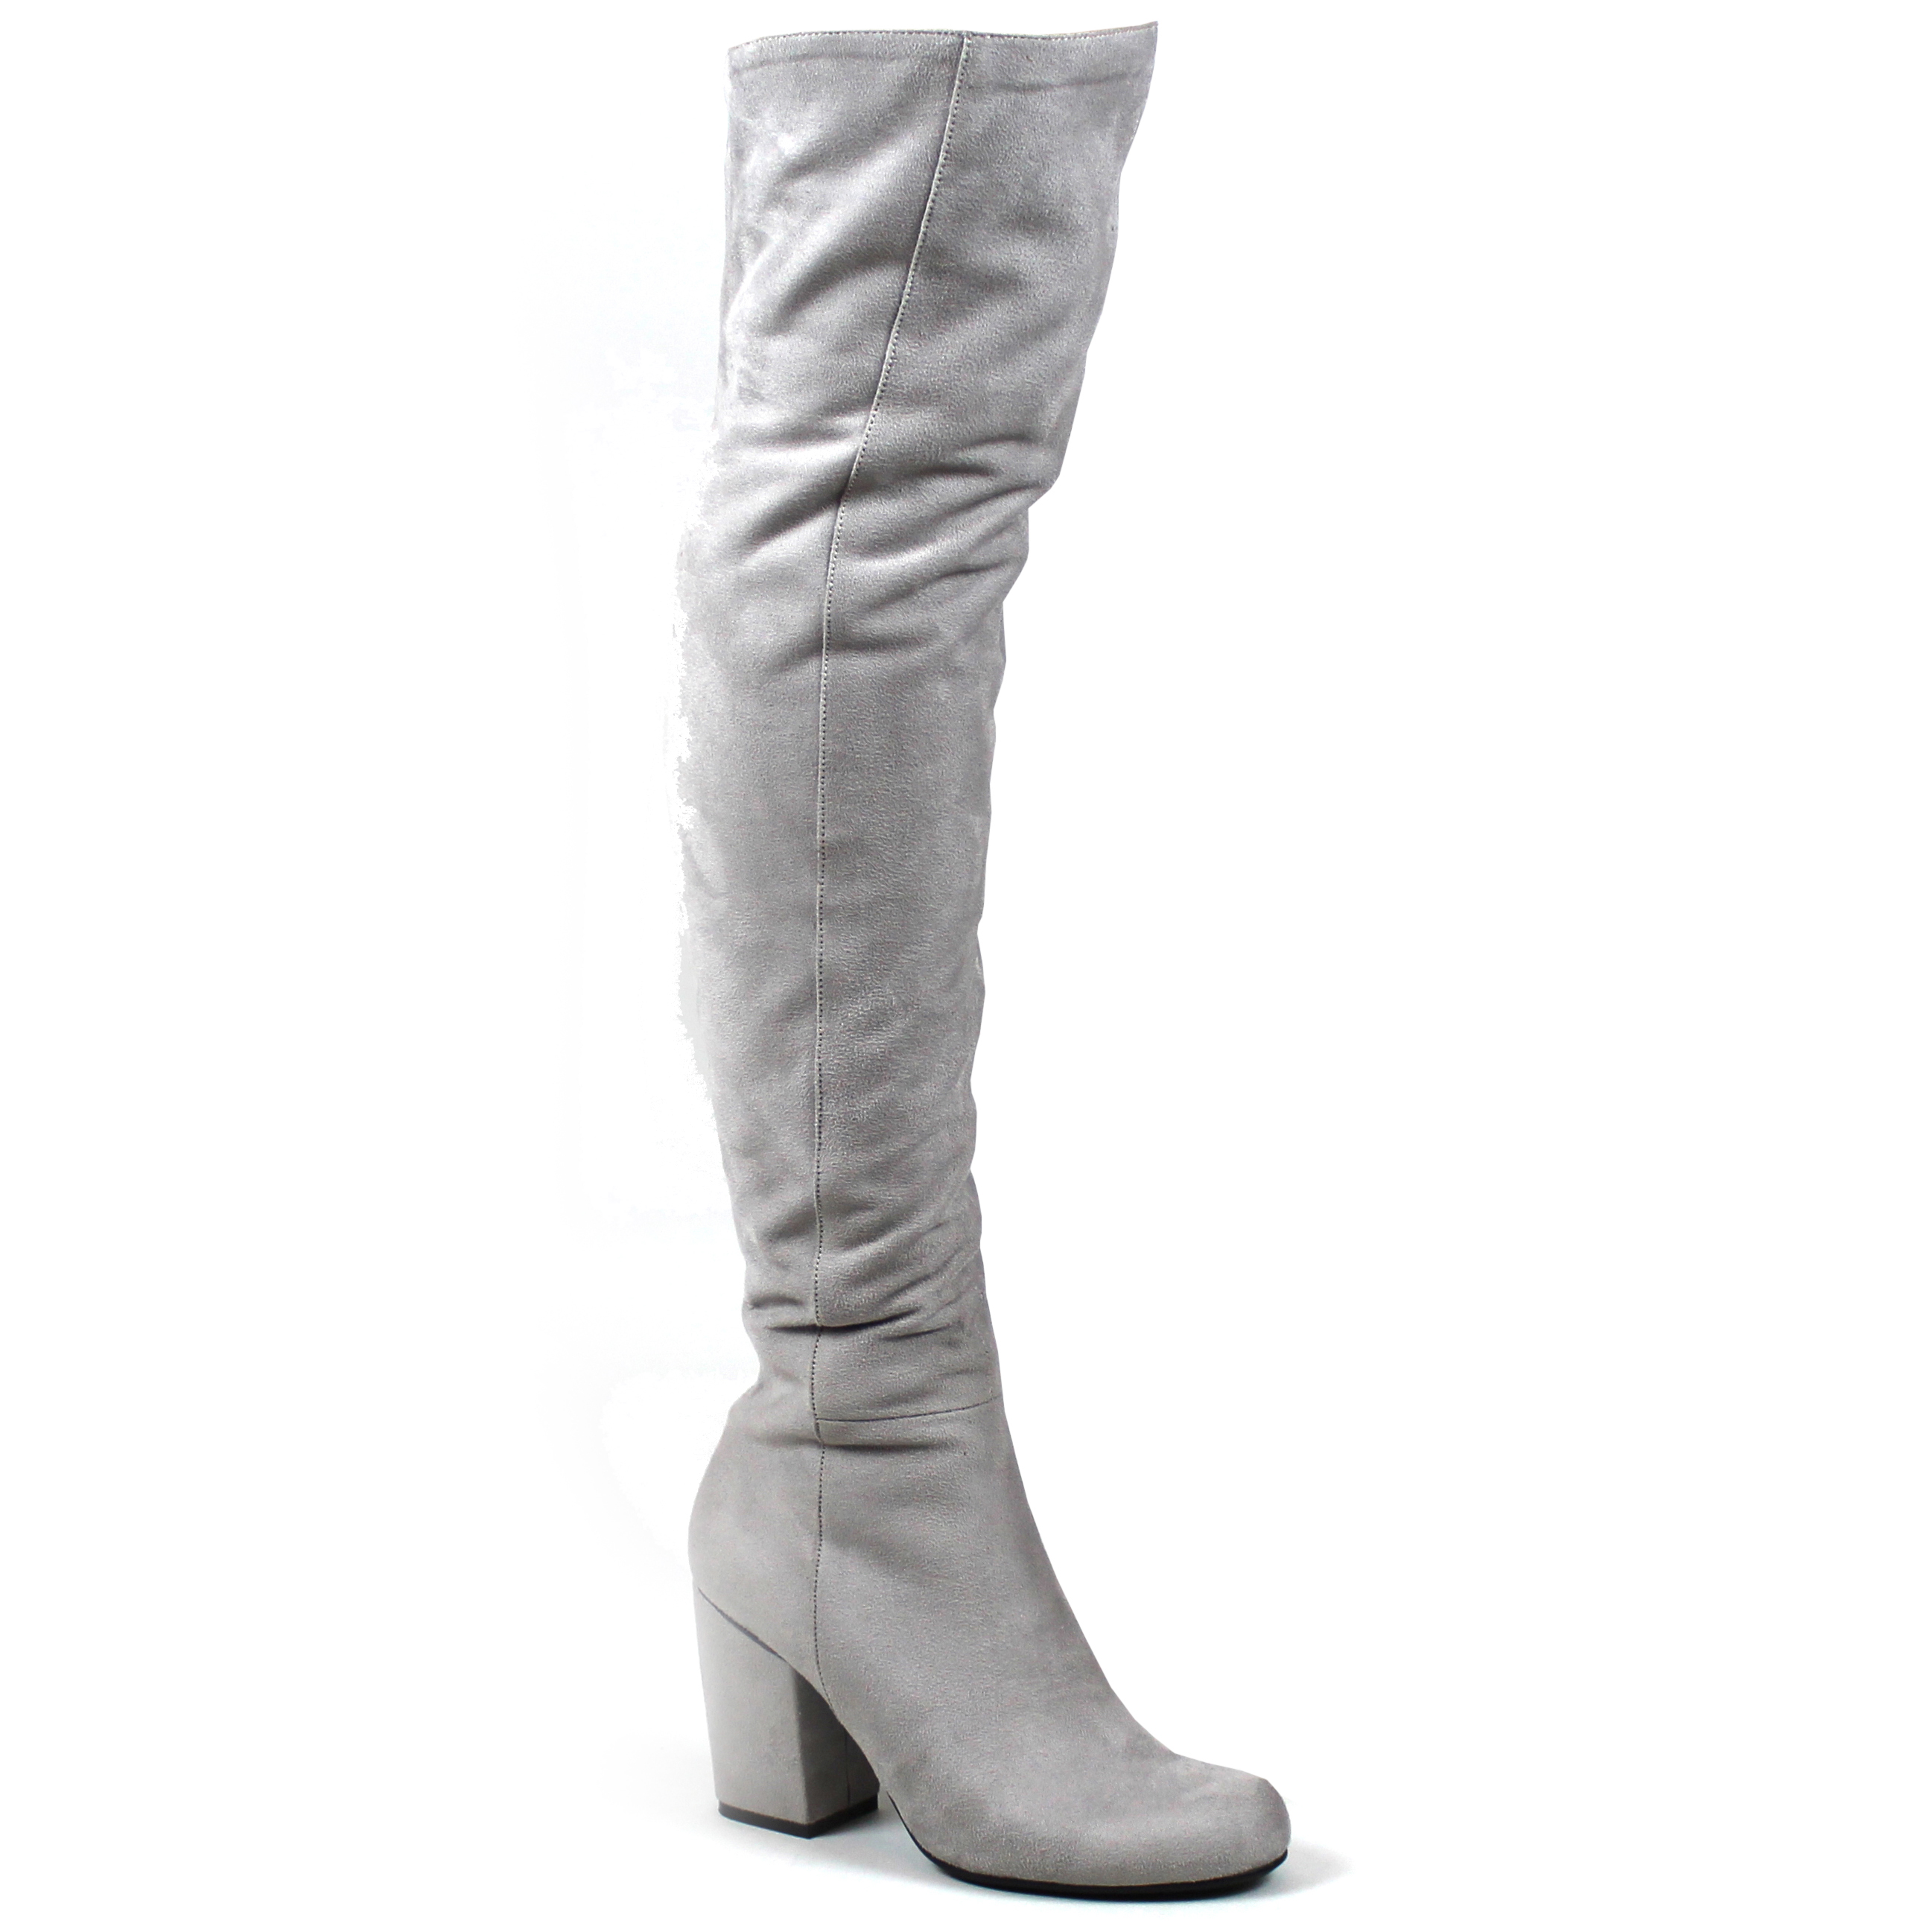 7f0a2d1058c Womens Low Block Heel Thigh High Slouch Fashion Winter Over Knee ...